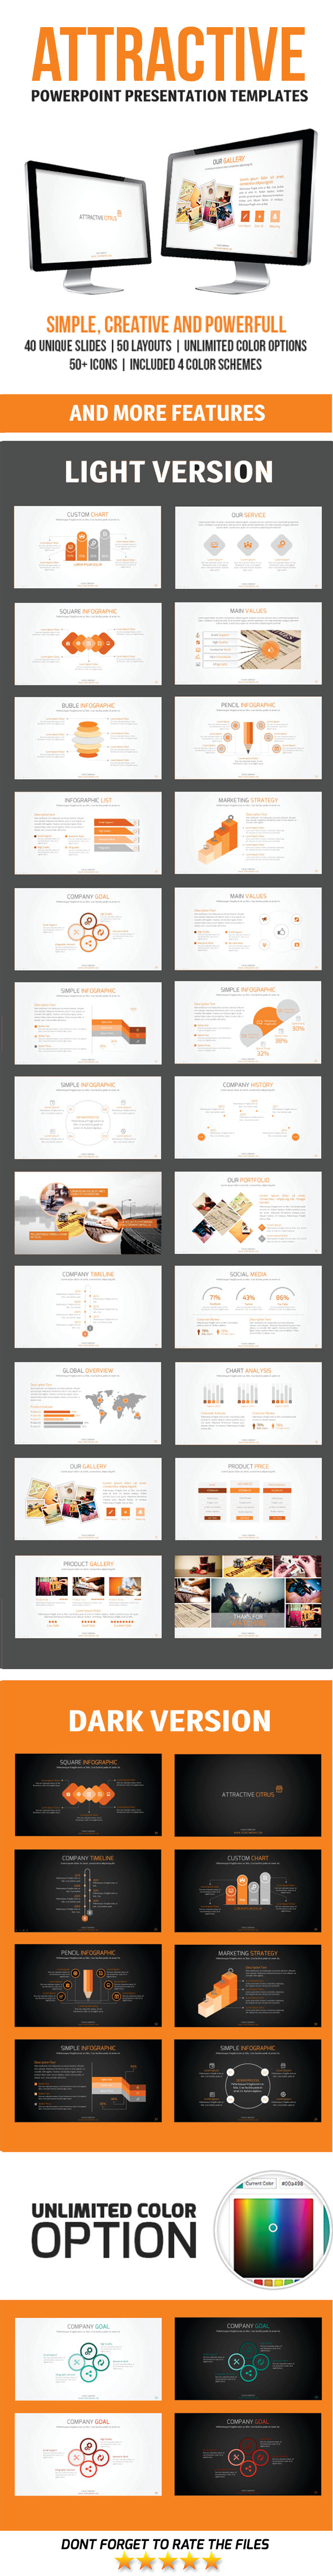 GraphicRiver Attractive PowerPoint Template 11445472